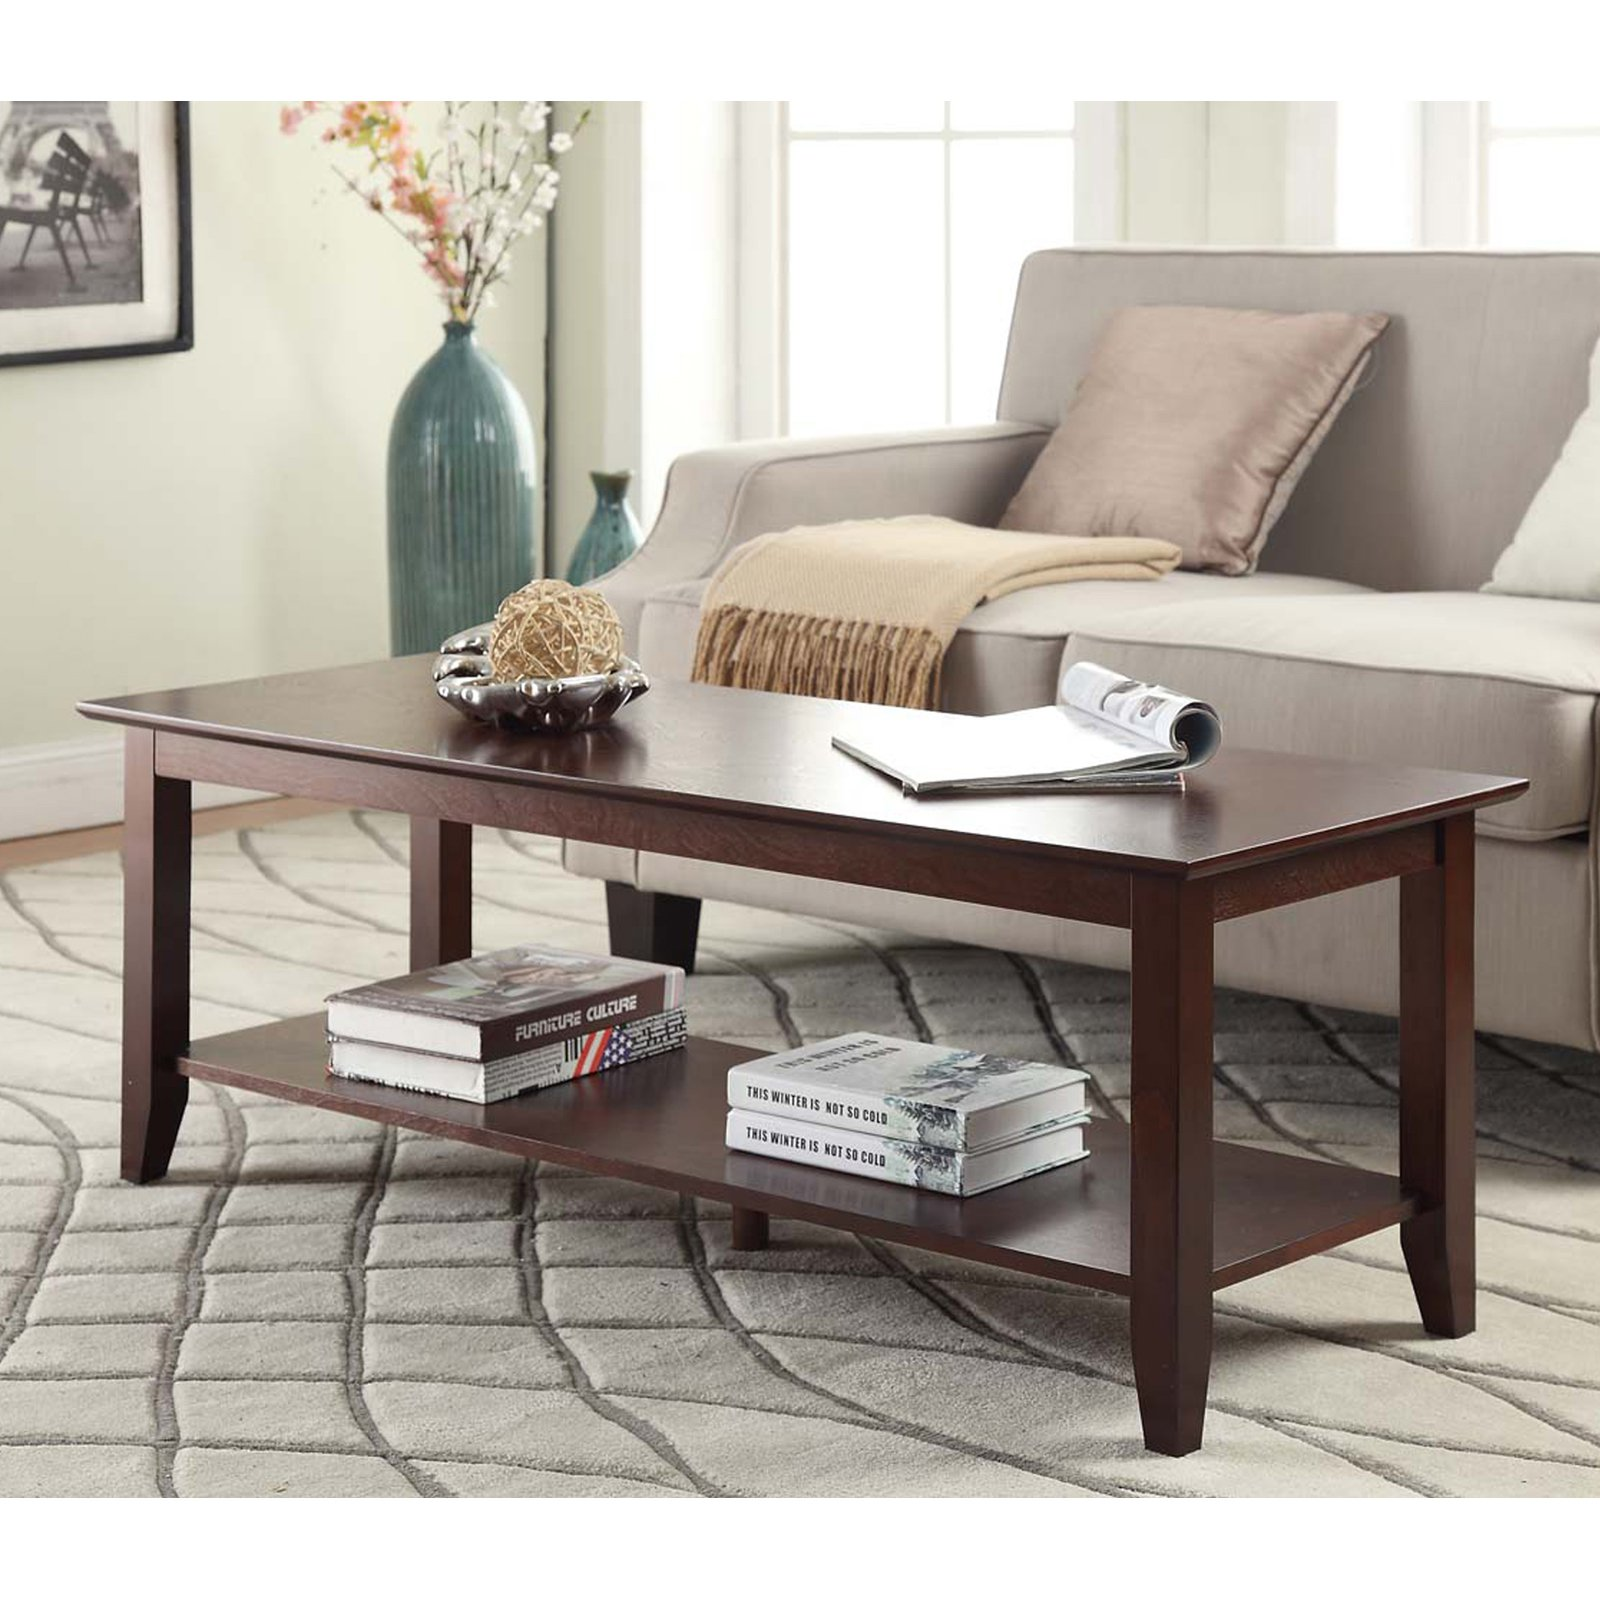 Convenience Concepts American Heritage Coffee Table, Multiple Finishes by Convenience Concepts